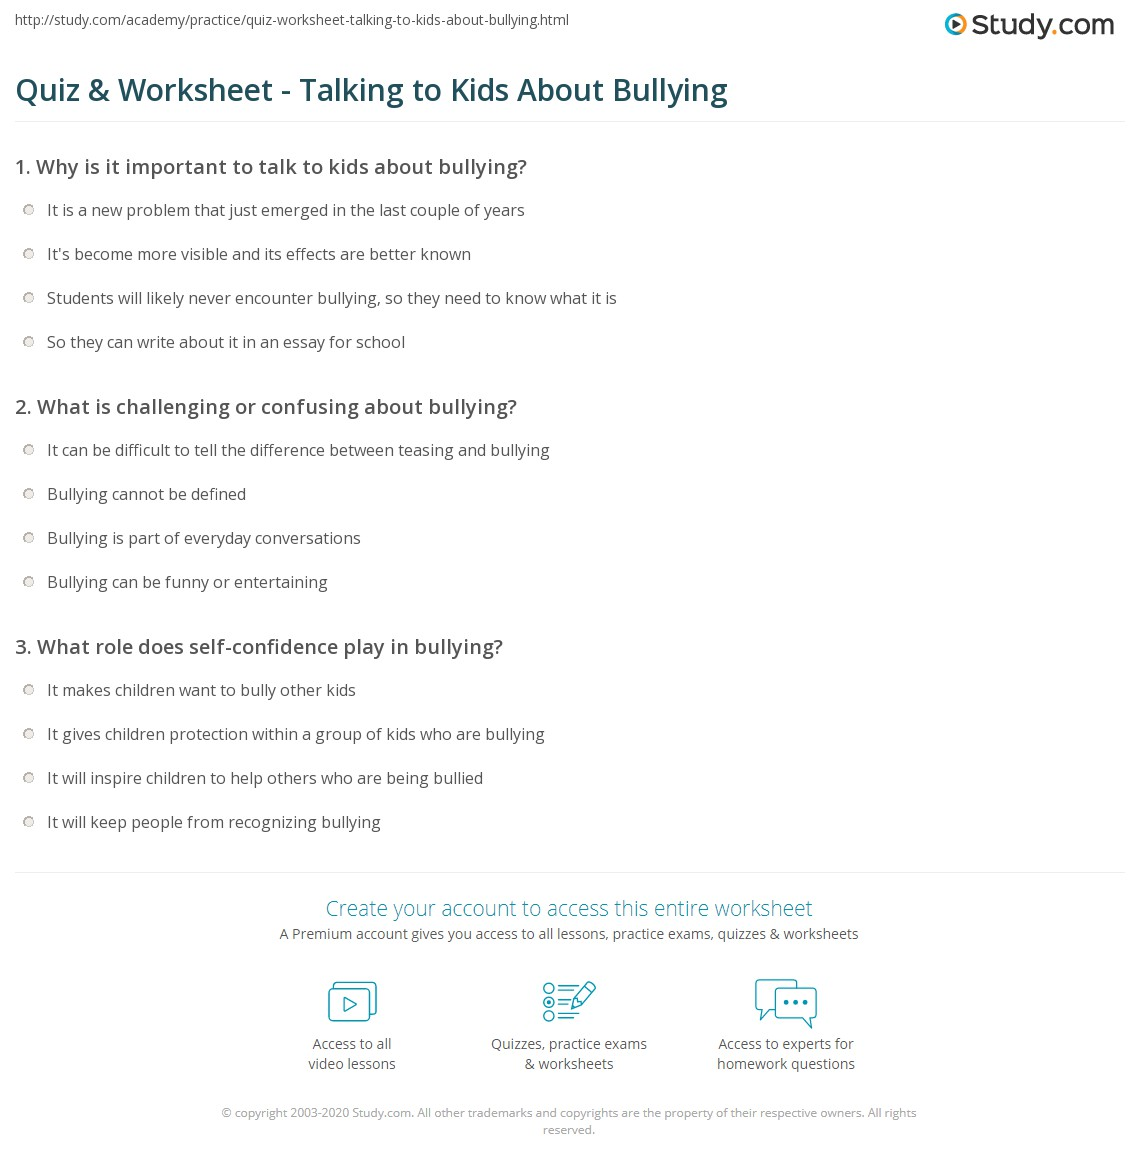 Worksheets Bullying Worksheets For Kids quiz worksheet talking to kids about bullying study com print how talk children worksheet